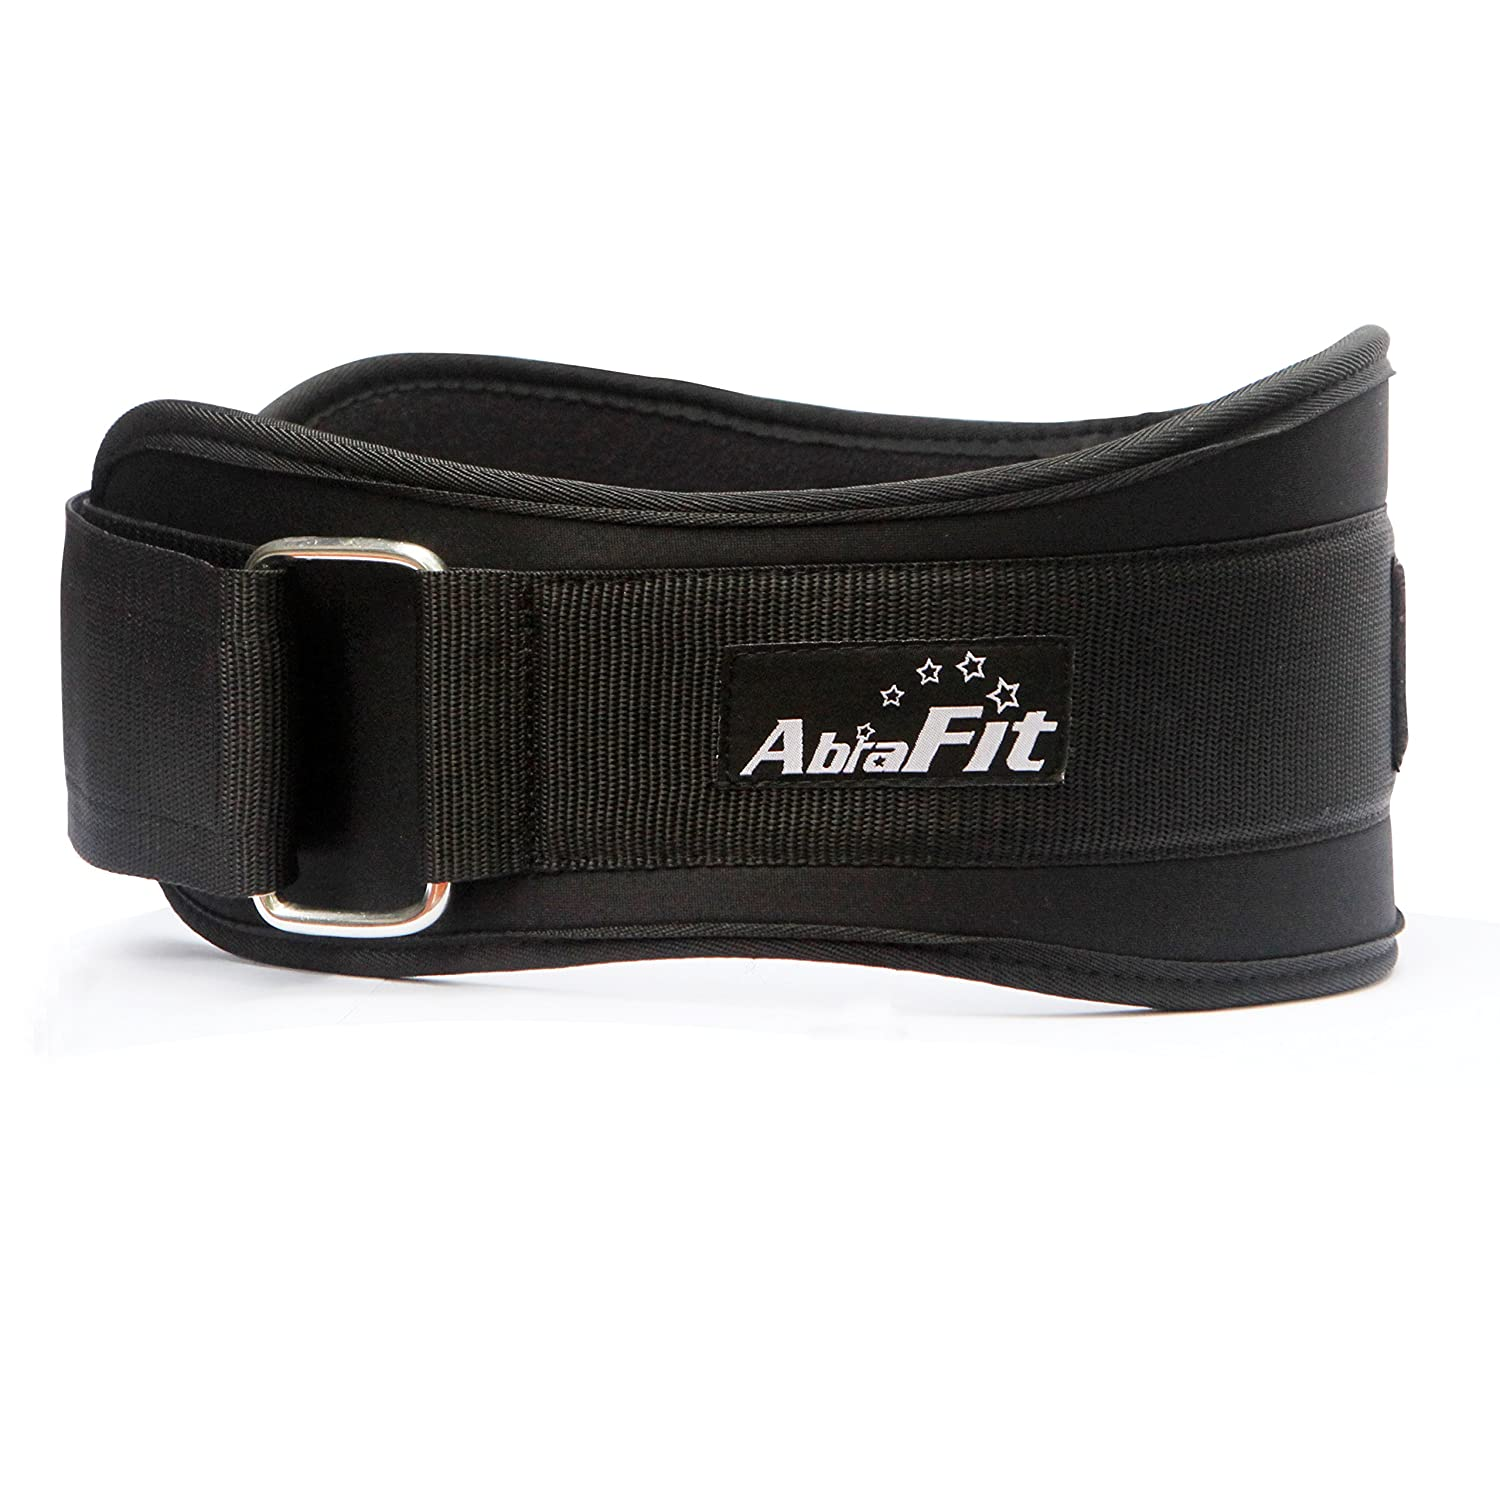 AbraFit 6 Inches Neoprene Belt Pro Version – Great for Squats, Deadlifts, Bent Over Rows, Crossfit, Lunges, Thrusters – Firm Comfortable Lumbar Back Support